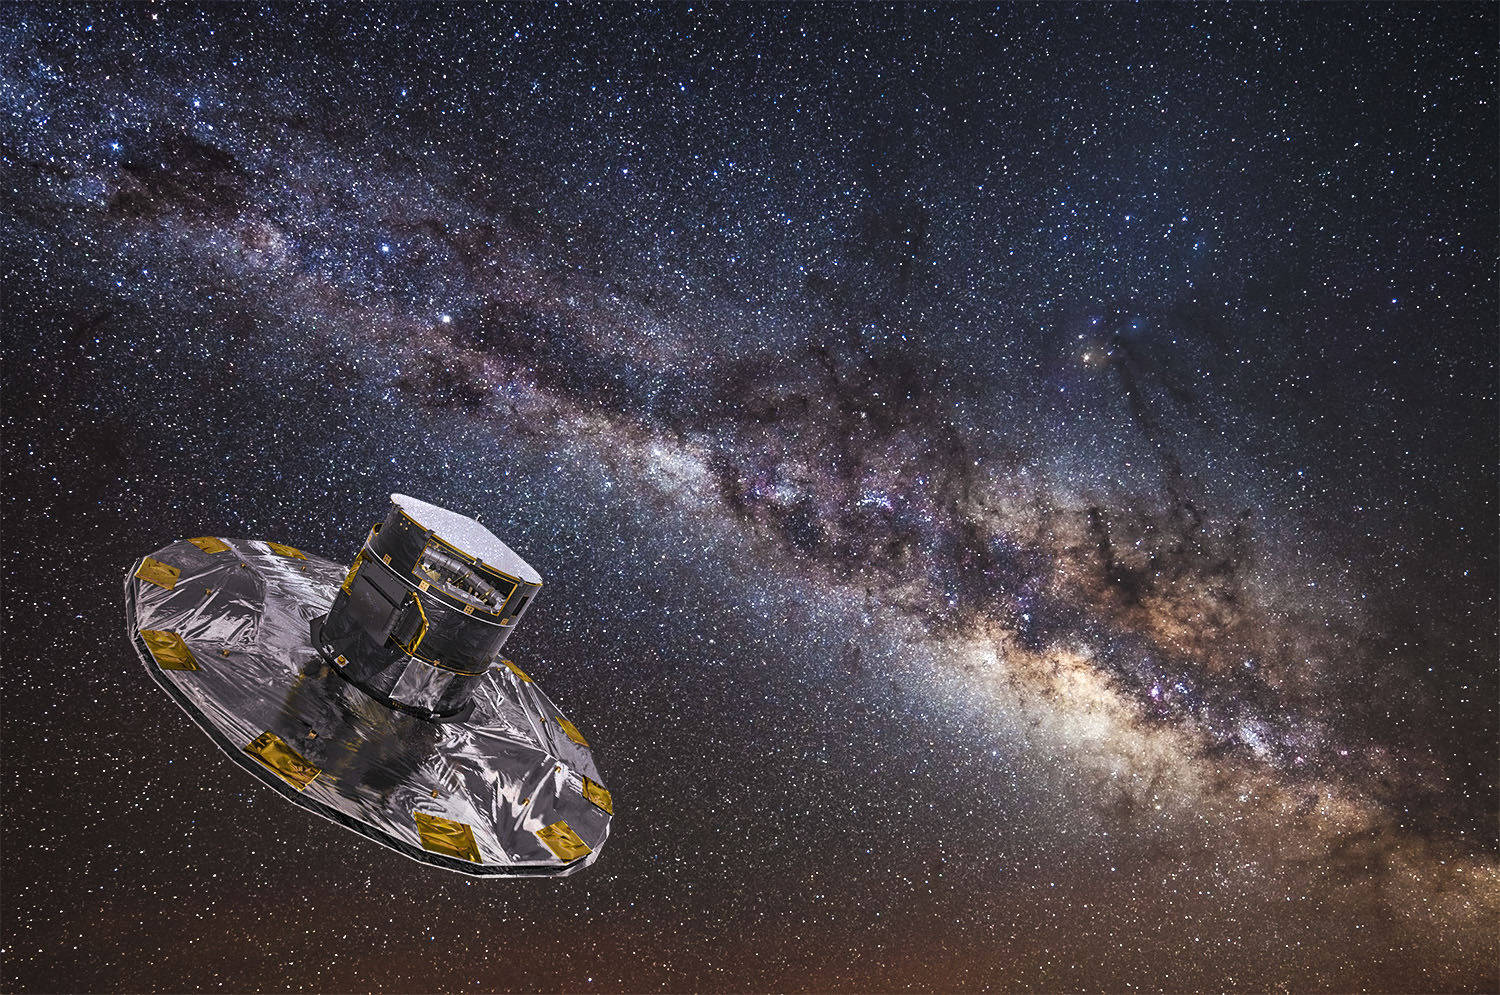 Gaia mapping the stars of the Milky Way. (ESA/ATG medialab; background: ESO/S. Brunier)